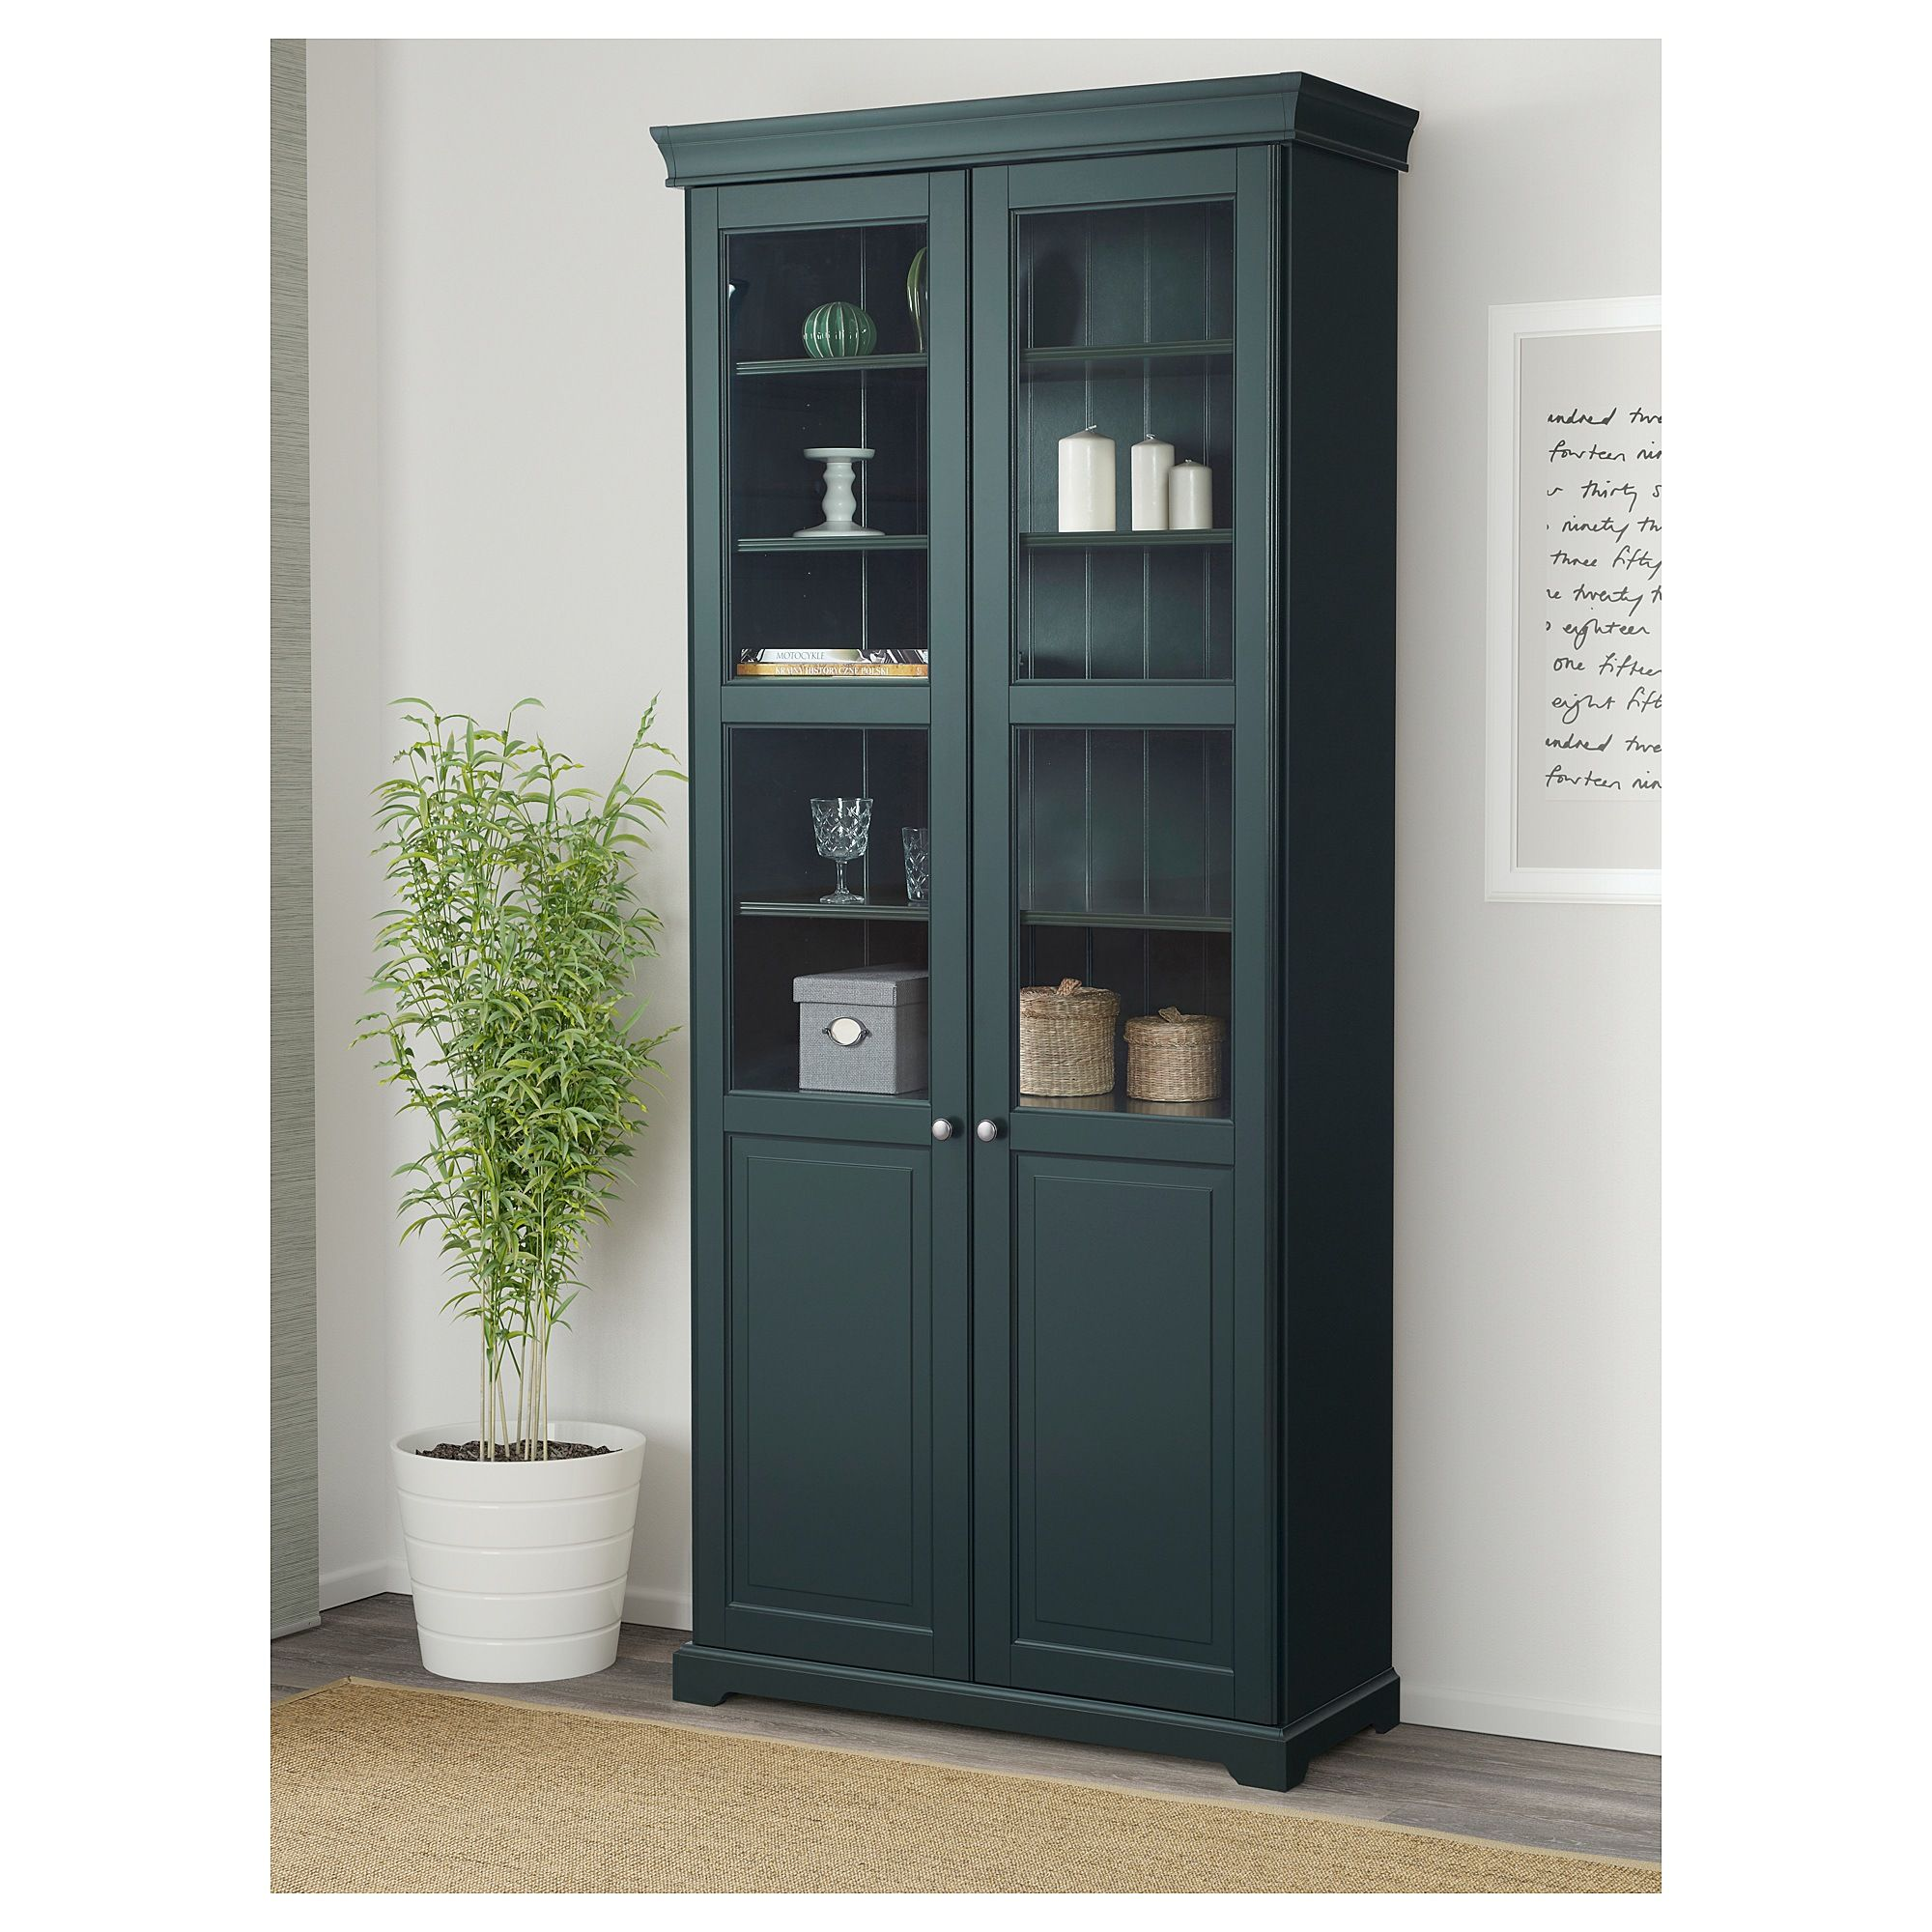 Liatorp Bookcase With Glass Doors Dark Olive Green In The Eller Home Furniture Bookcase With Glass Doors Liatorp Ikea Bookcase